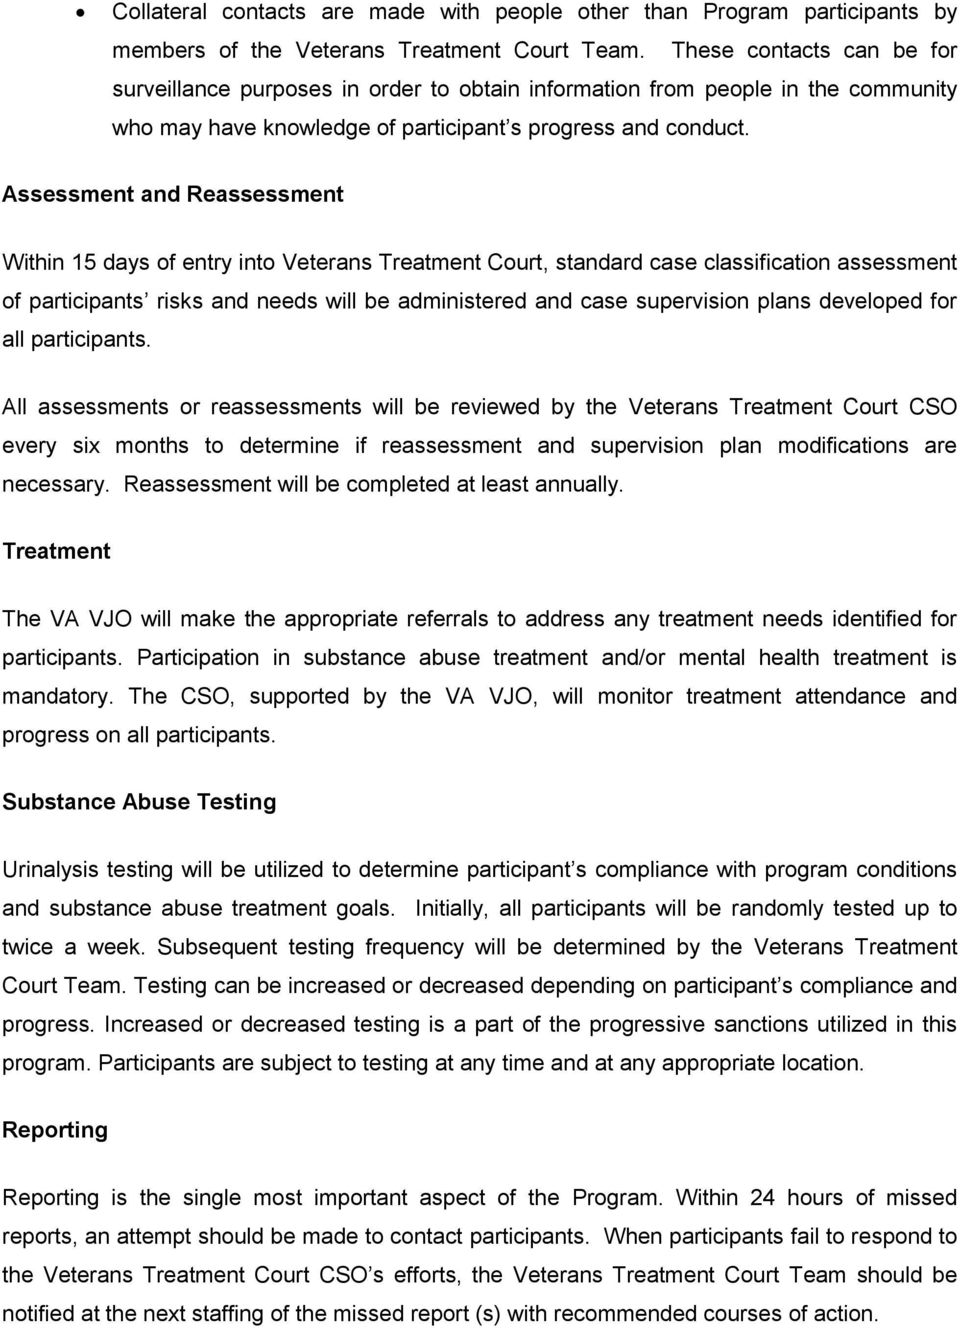 Assessment and Reassessment Within 15 days of entry into Veterans Treatment Court, standard case classification assessment of participants risks and needs will be administered and case supervision